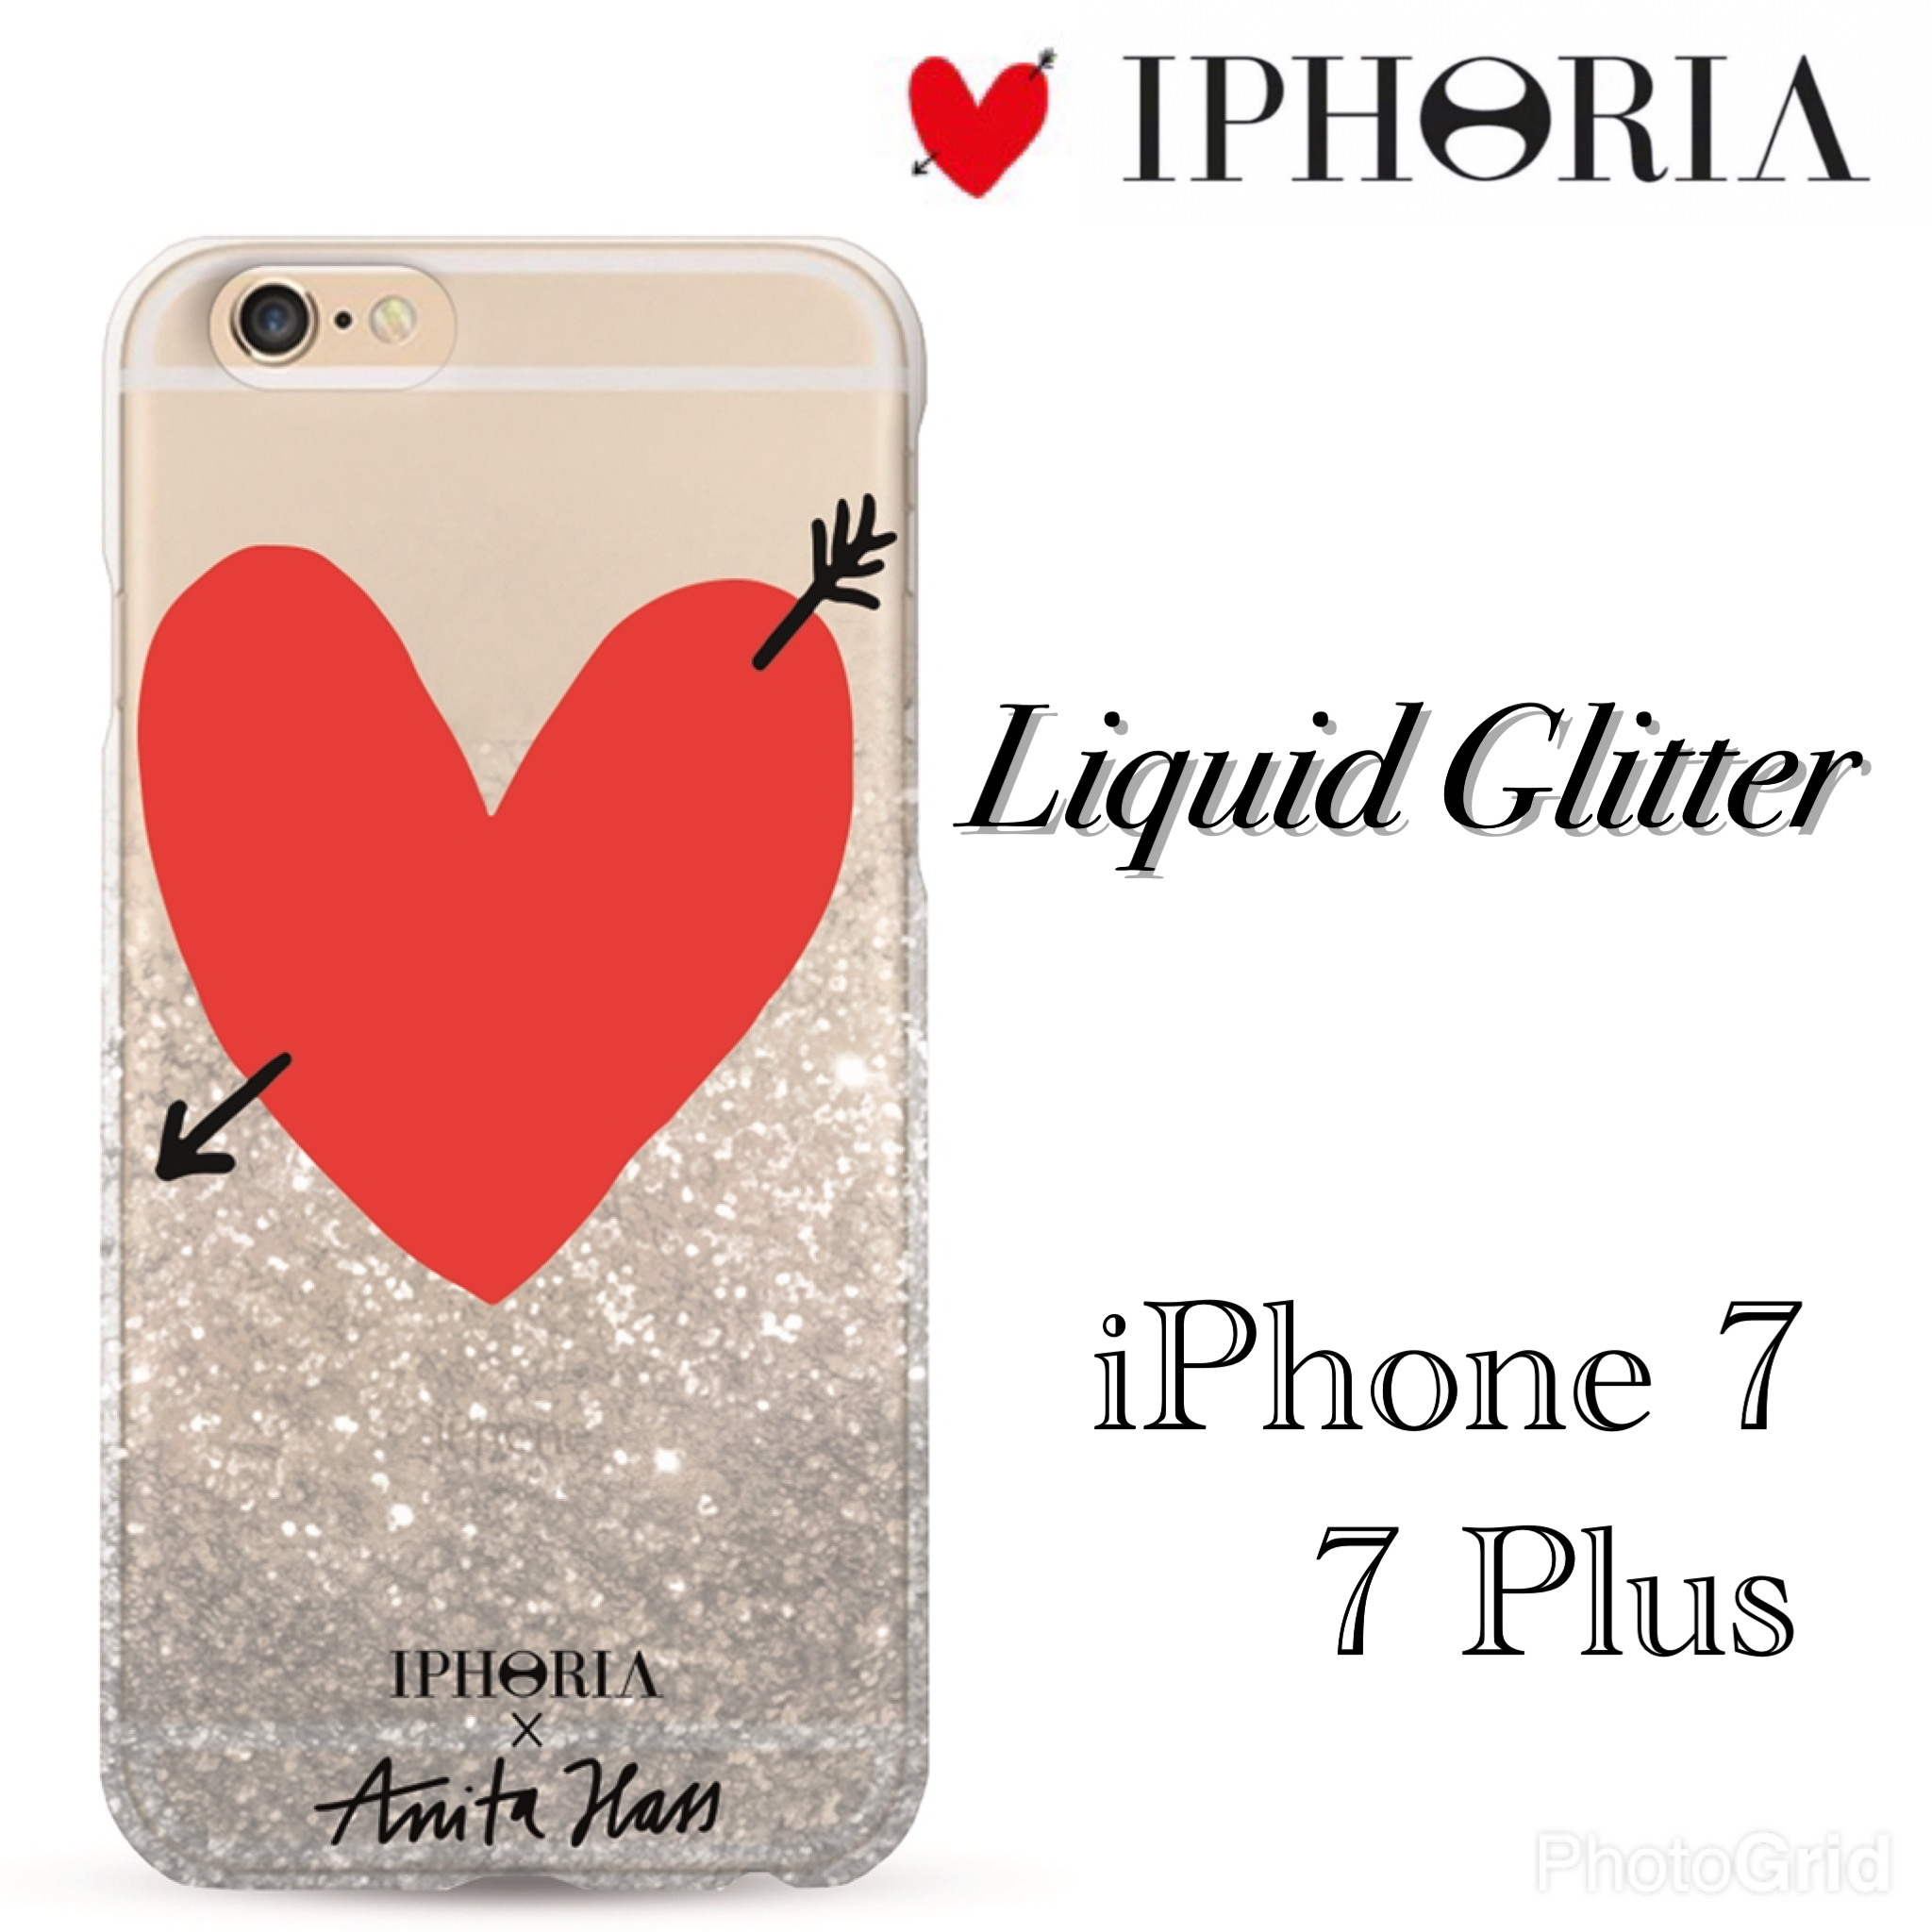 【国内発送】IPHORIA X Anita Hass Liquid Glitter★iPhone 7♪